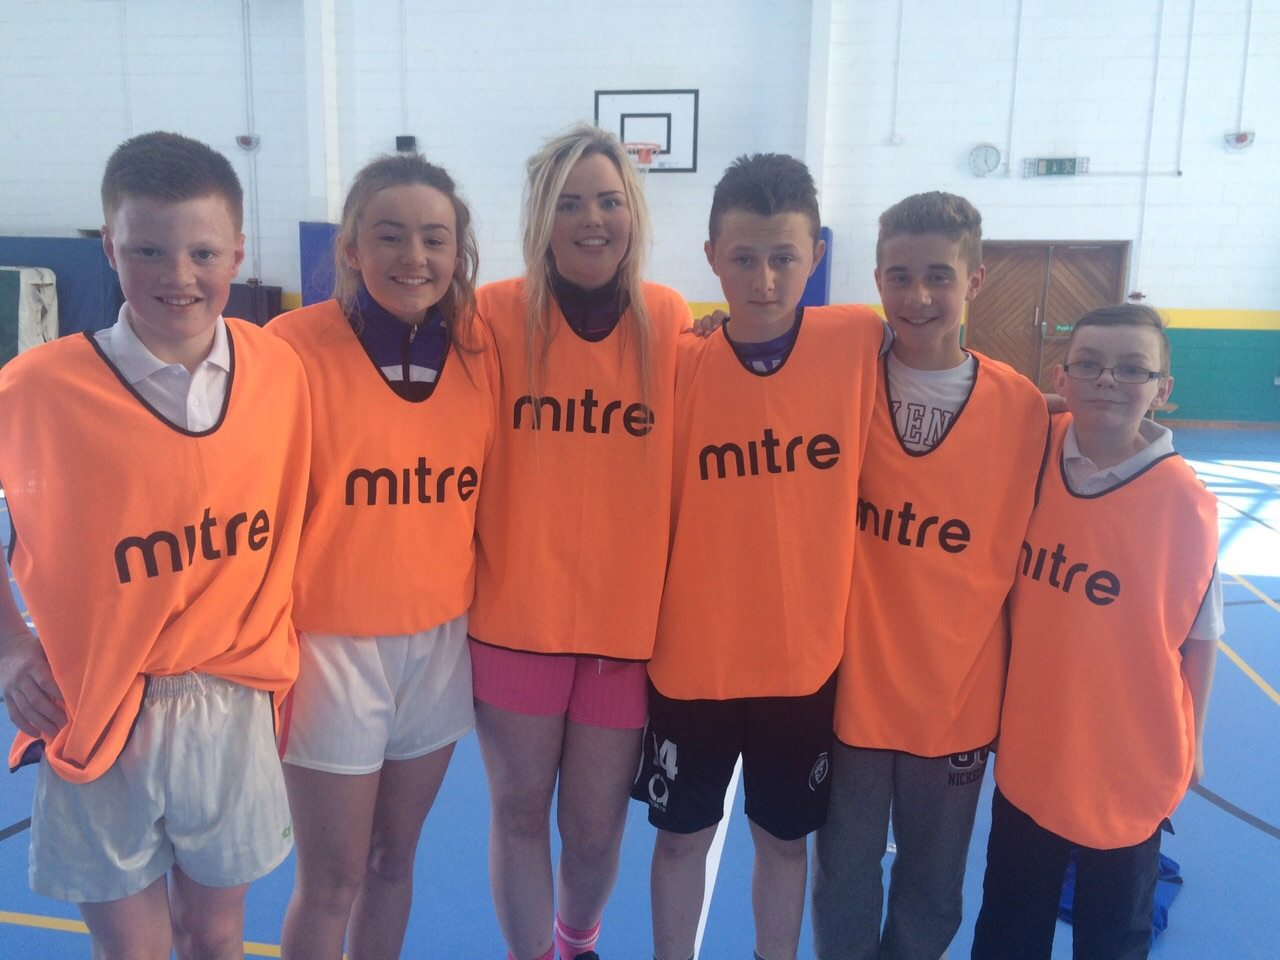 Winning-team-from-the-soccer-tournament-Diarmuid-Flynn--Alice-Duffy--Sarah-O-Grady--Corey-Healy--Dylan-Moloney--Tony-O-Sullivan